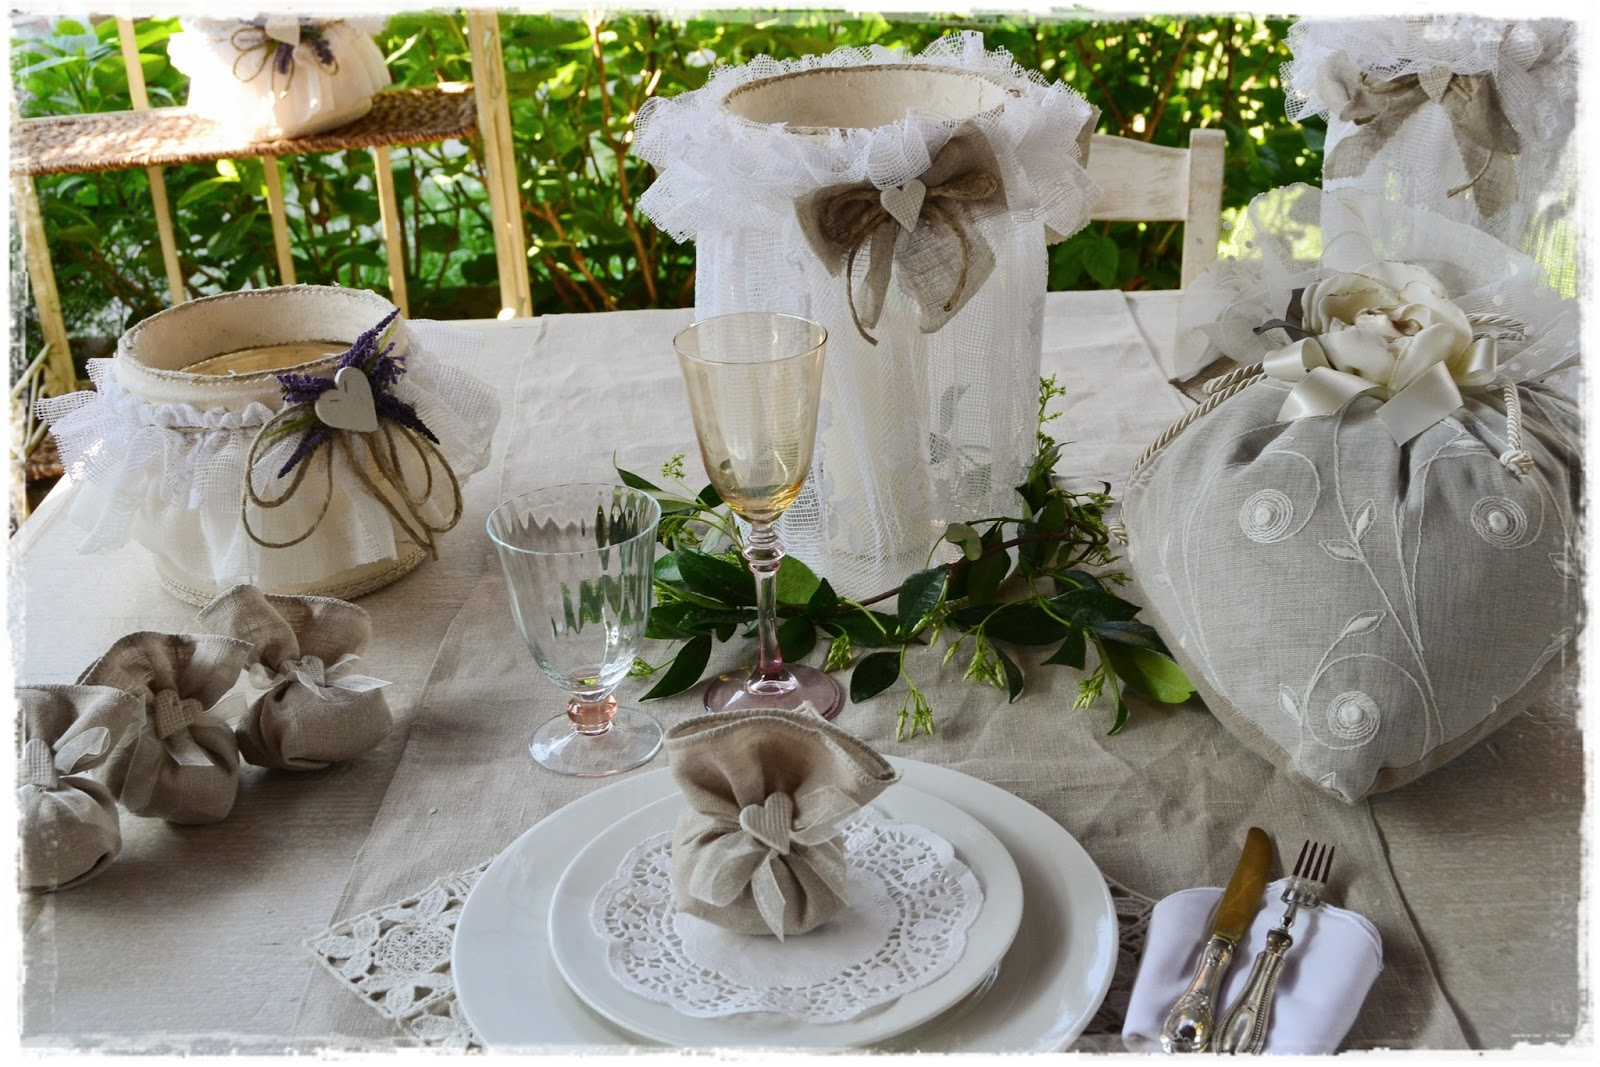 Lecosemeravigliose shabby e country chic passions: the magic of an ...